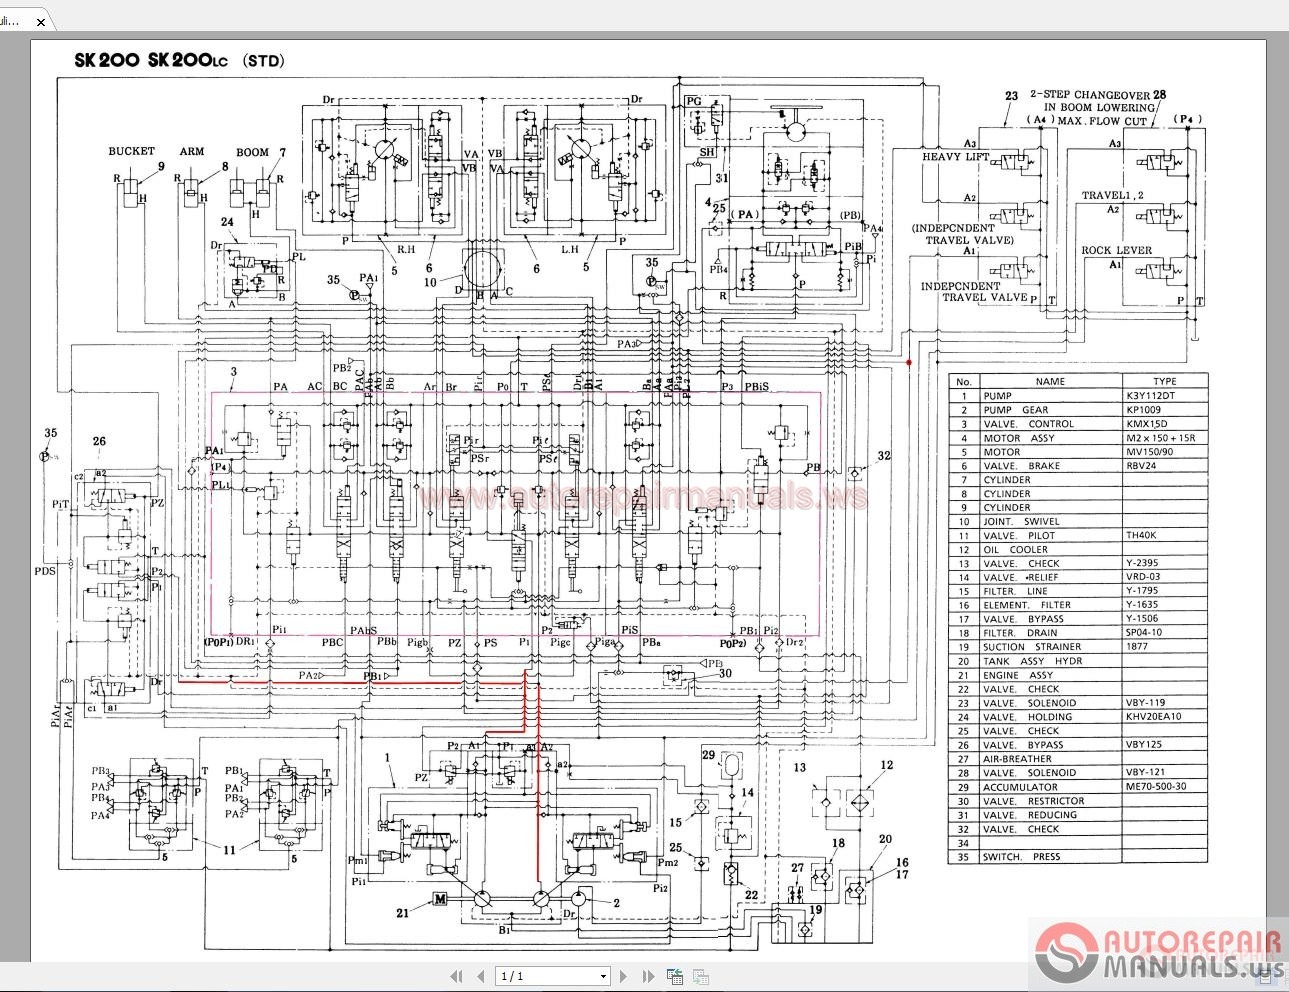 Kobelco_SK200 1_Hydraulic_Diagram 100 [ gl1200 shop manual ] gl1800 wiring diagram on gl1800 kobelco wiring diagram at aneh.co